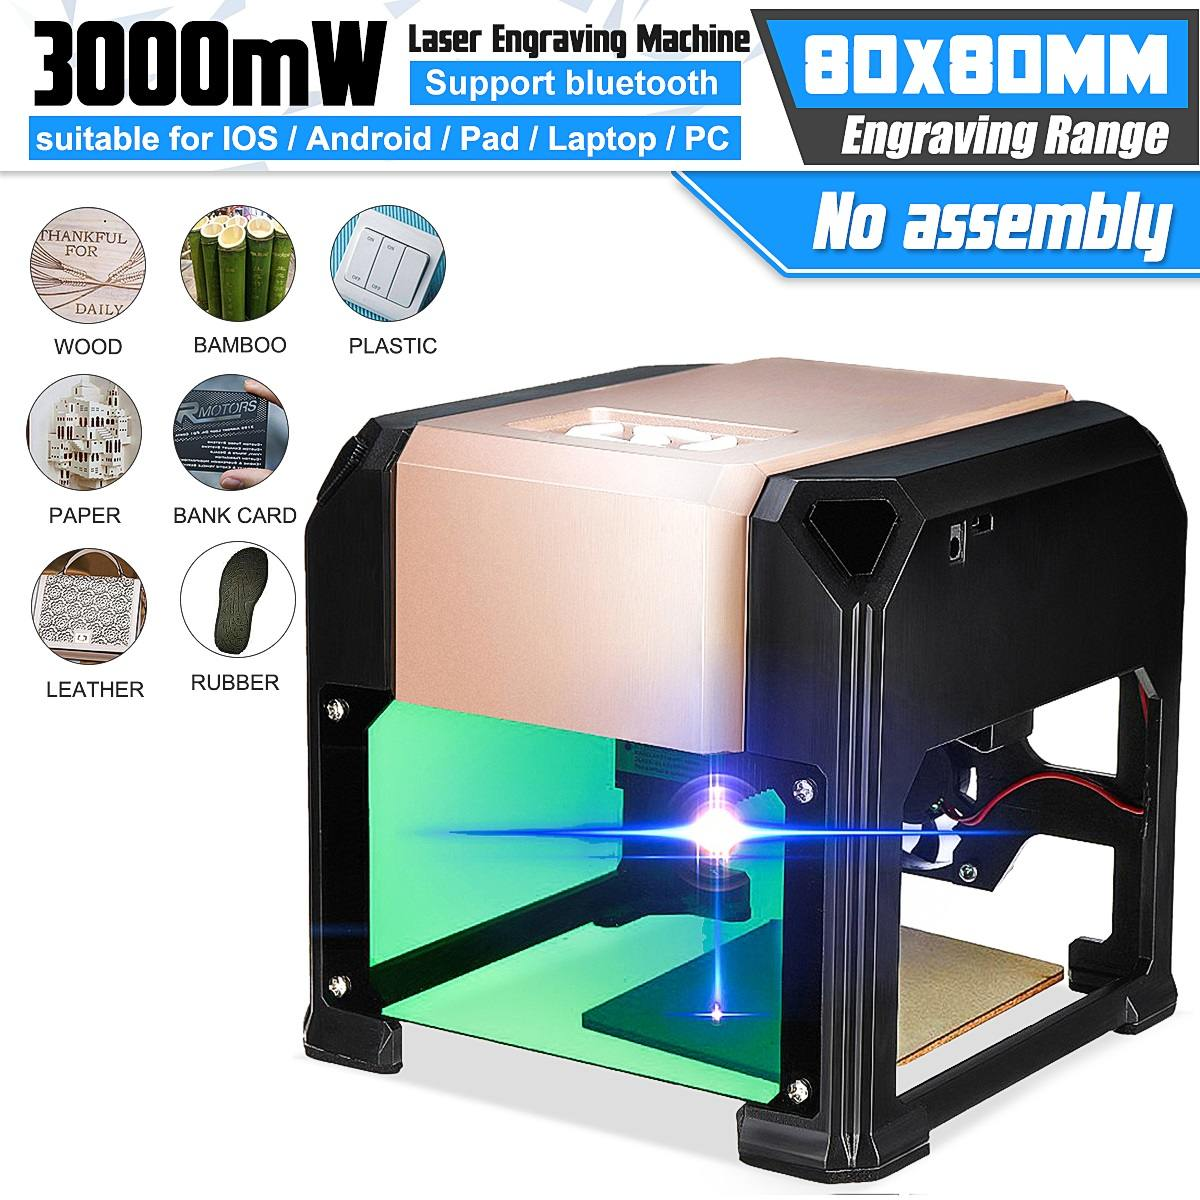 New Upgrade Bluetooth 3000MW Golden CNC Laser Engraving Machine AC 110-220V DIY Engraver Desktop Wood Router/Cutter/Printer